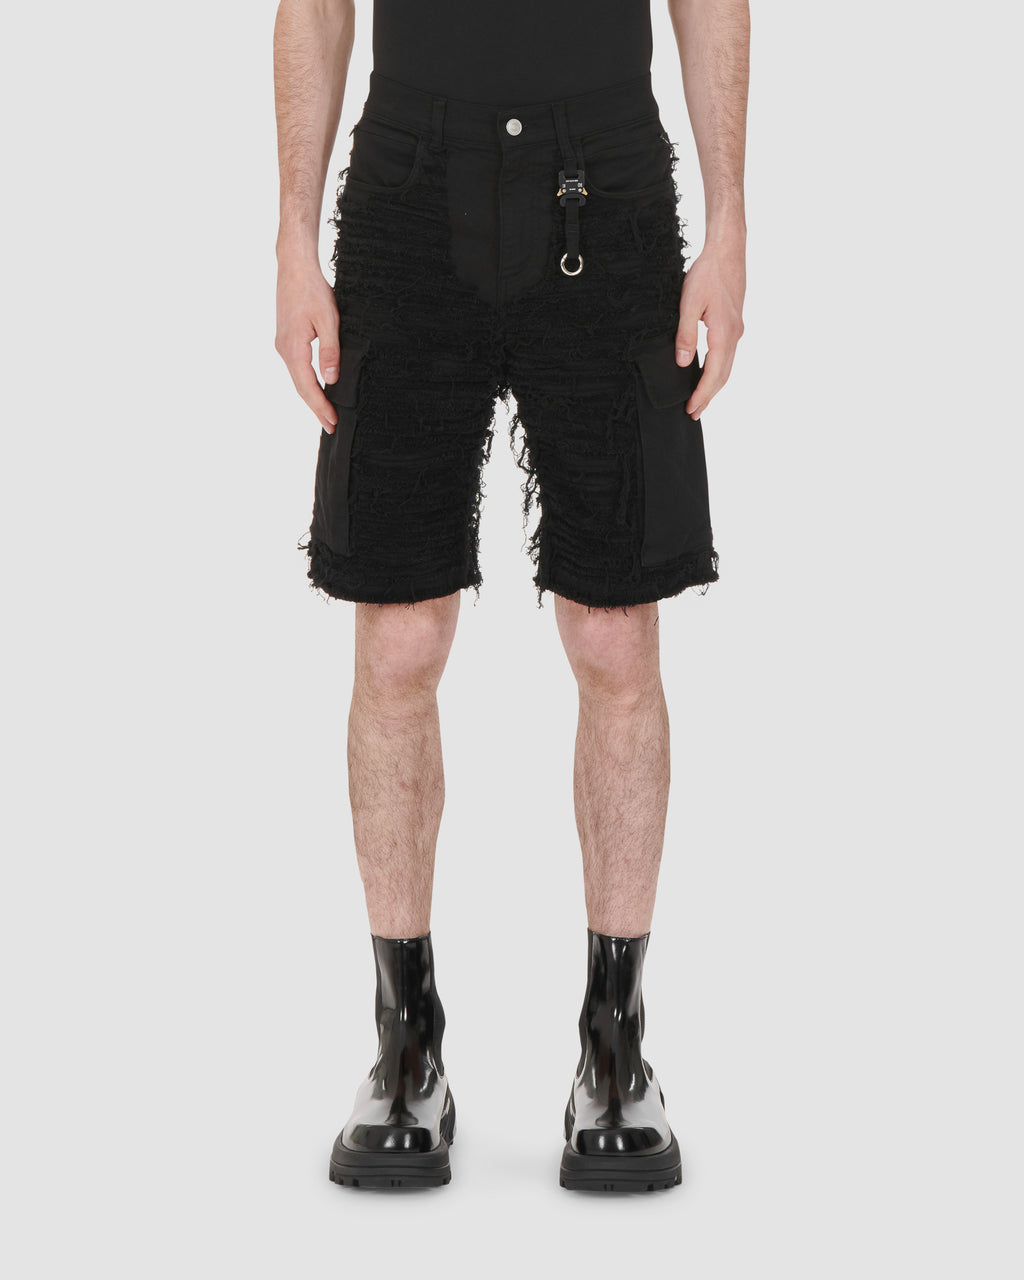 BLACKMEANS  SHORTS